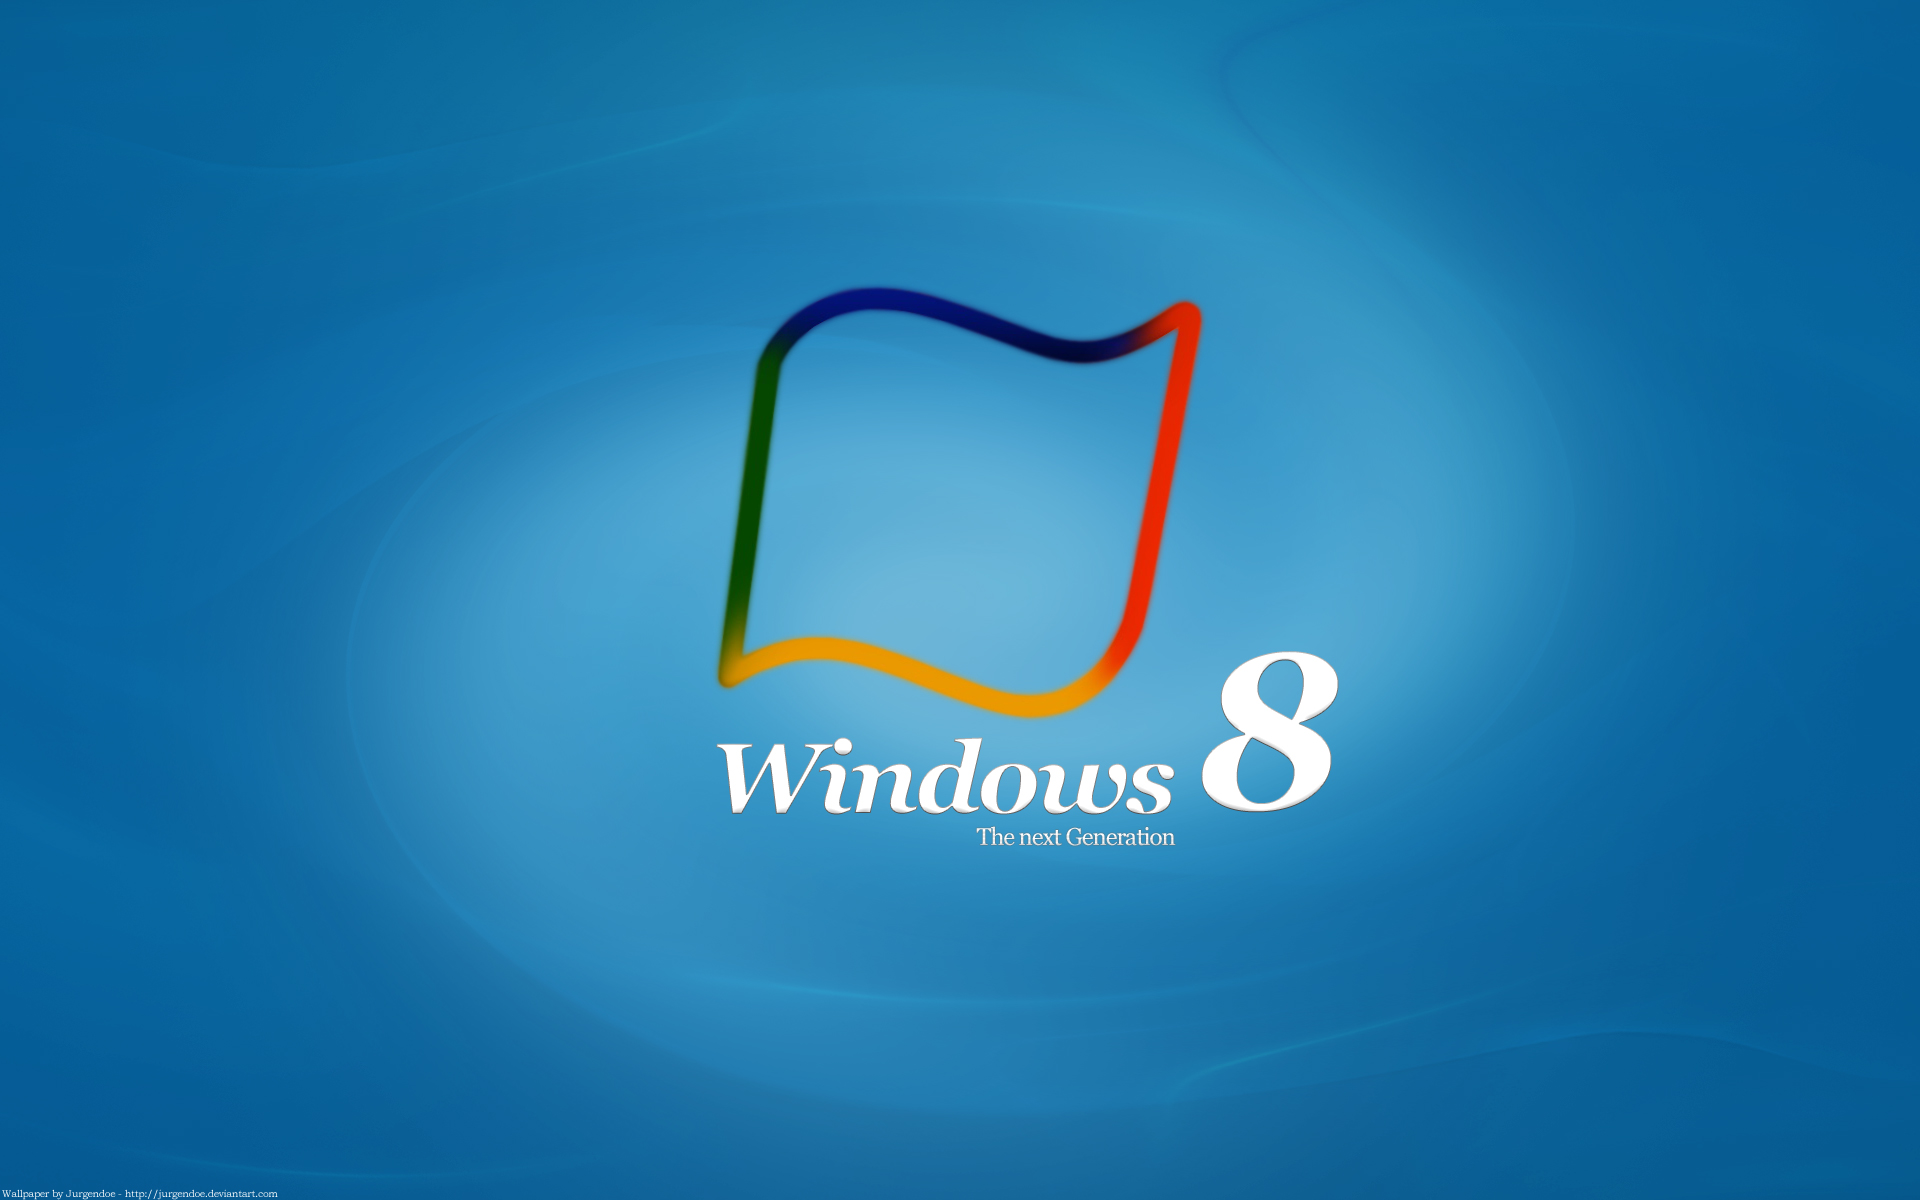 Unofficialwindows8wallpaperbyjurgendoe d3bz6yp